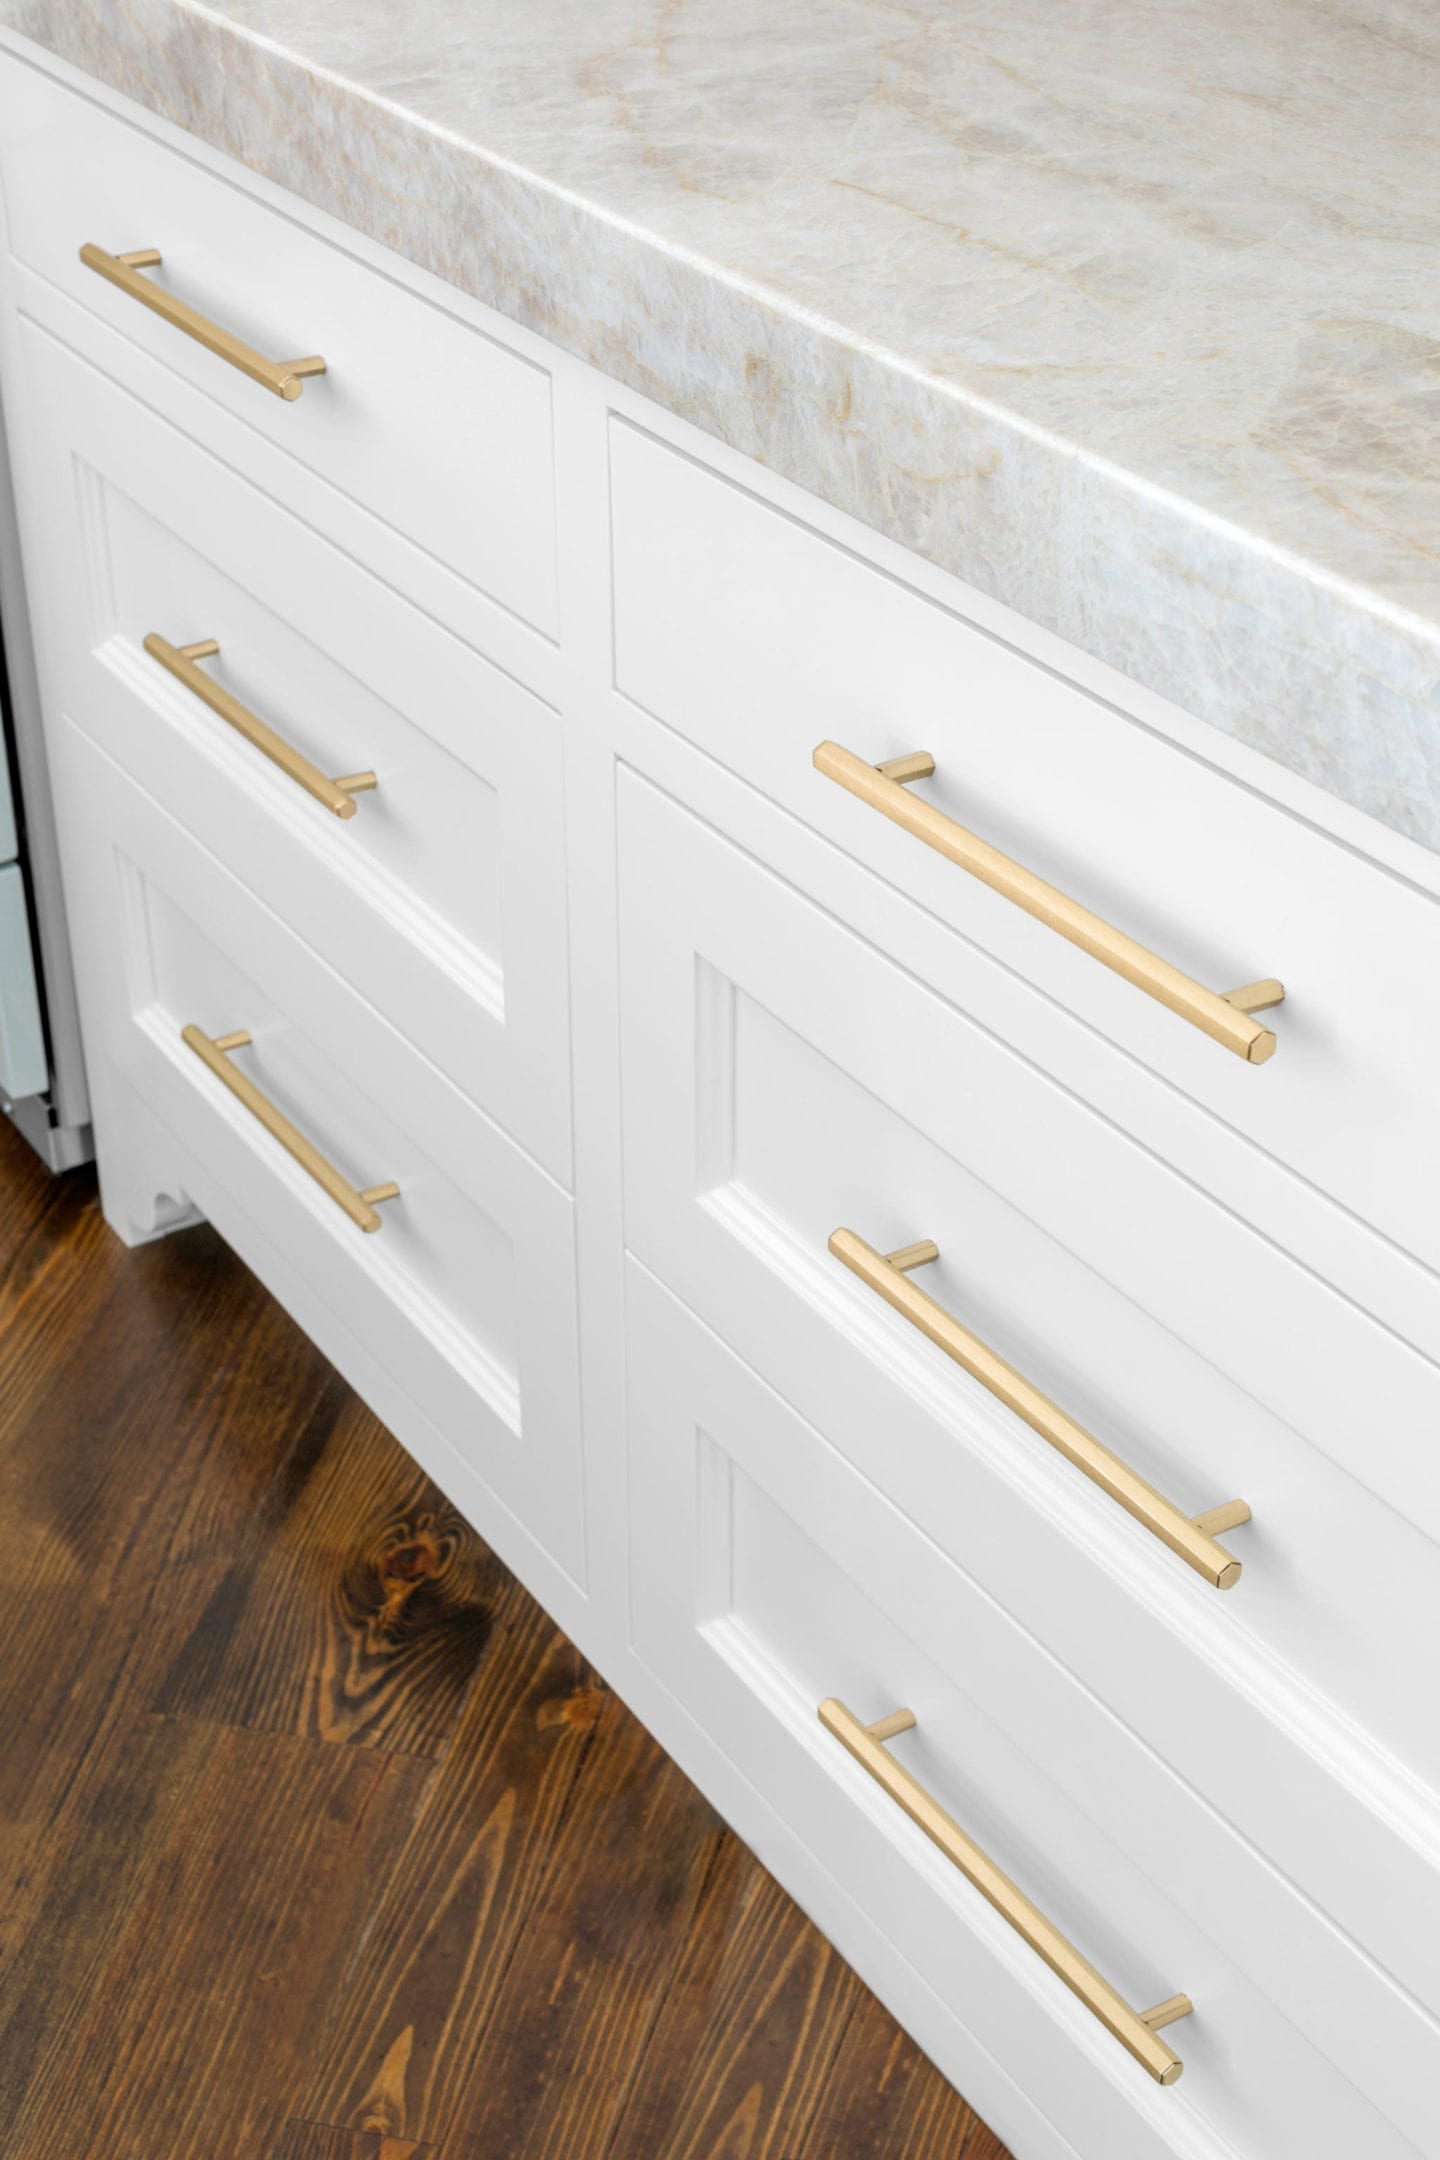 Gold Cabinet Hardware from Vesta on white cabinets with Taj Majal Quartzite countertops.